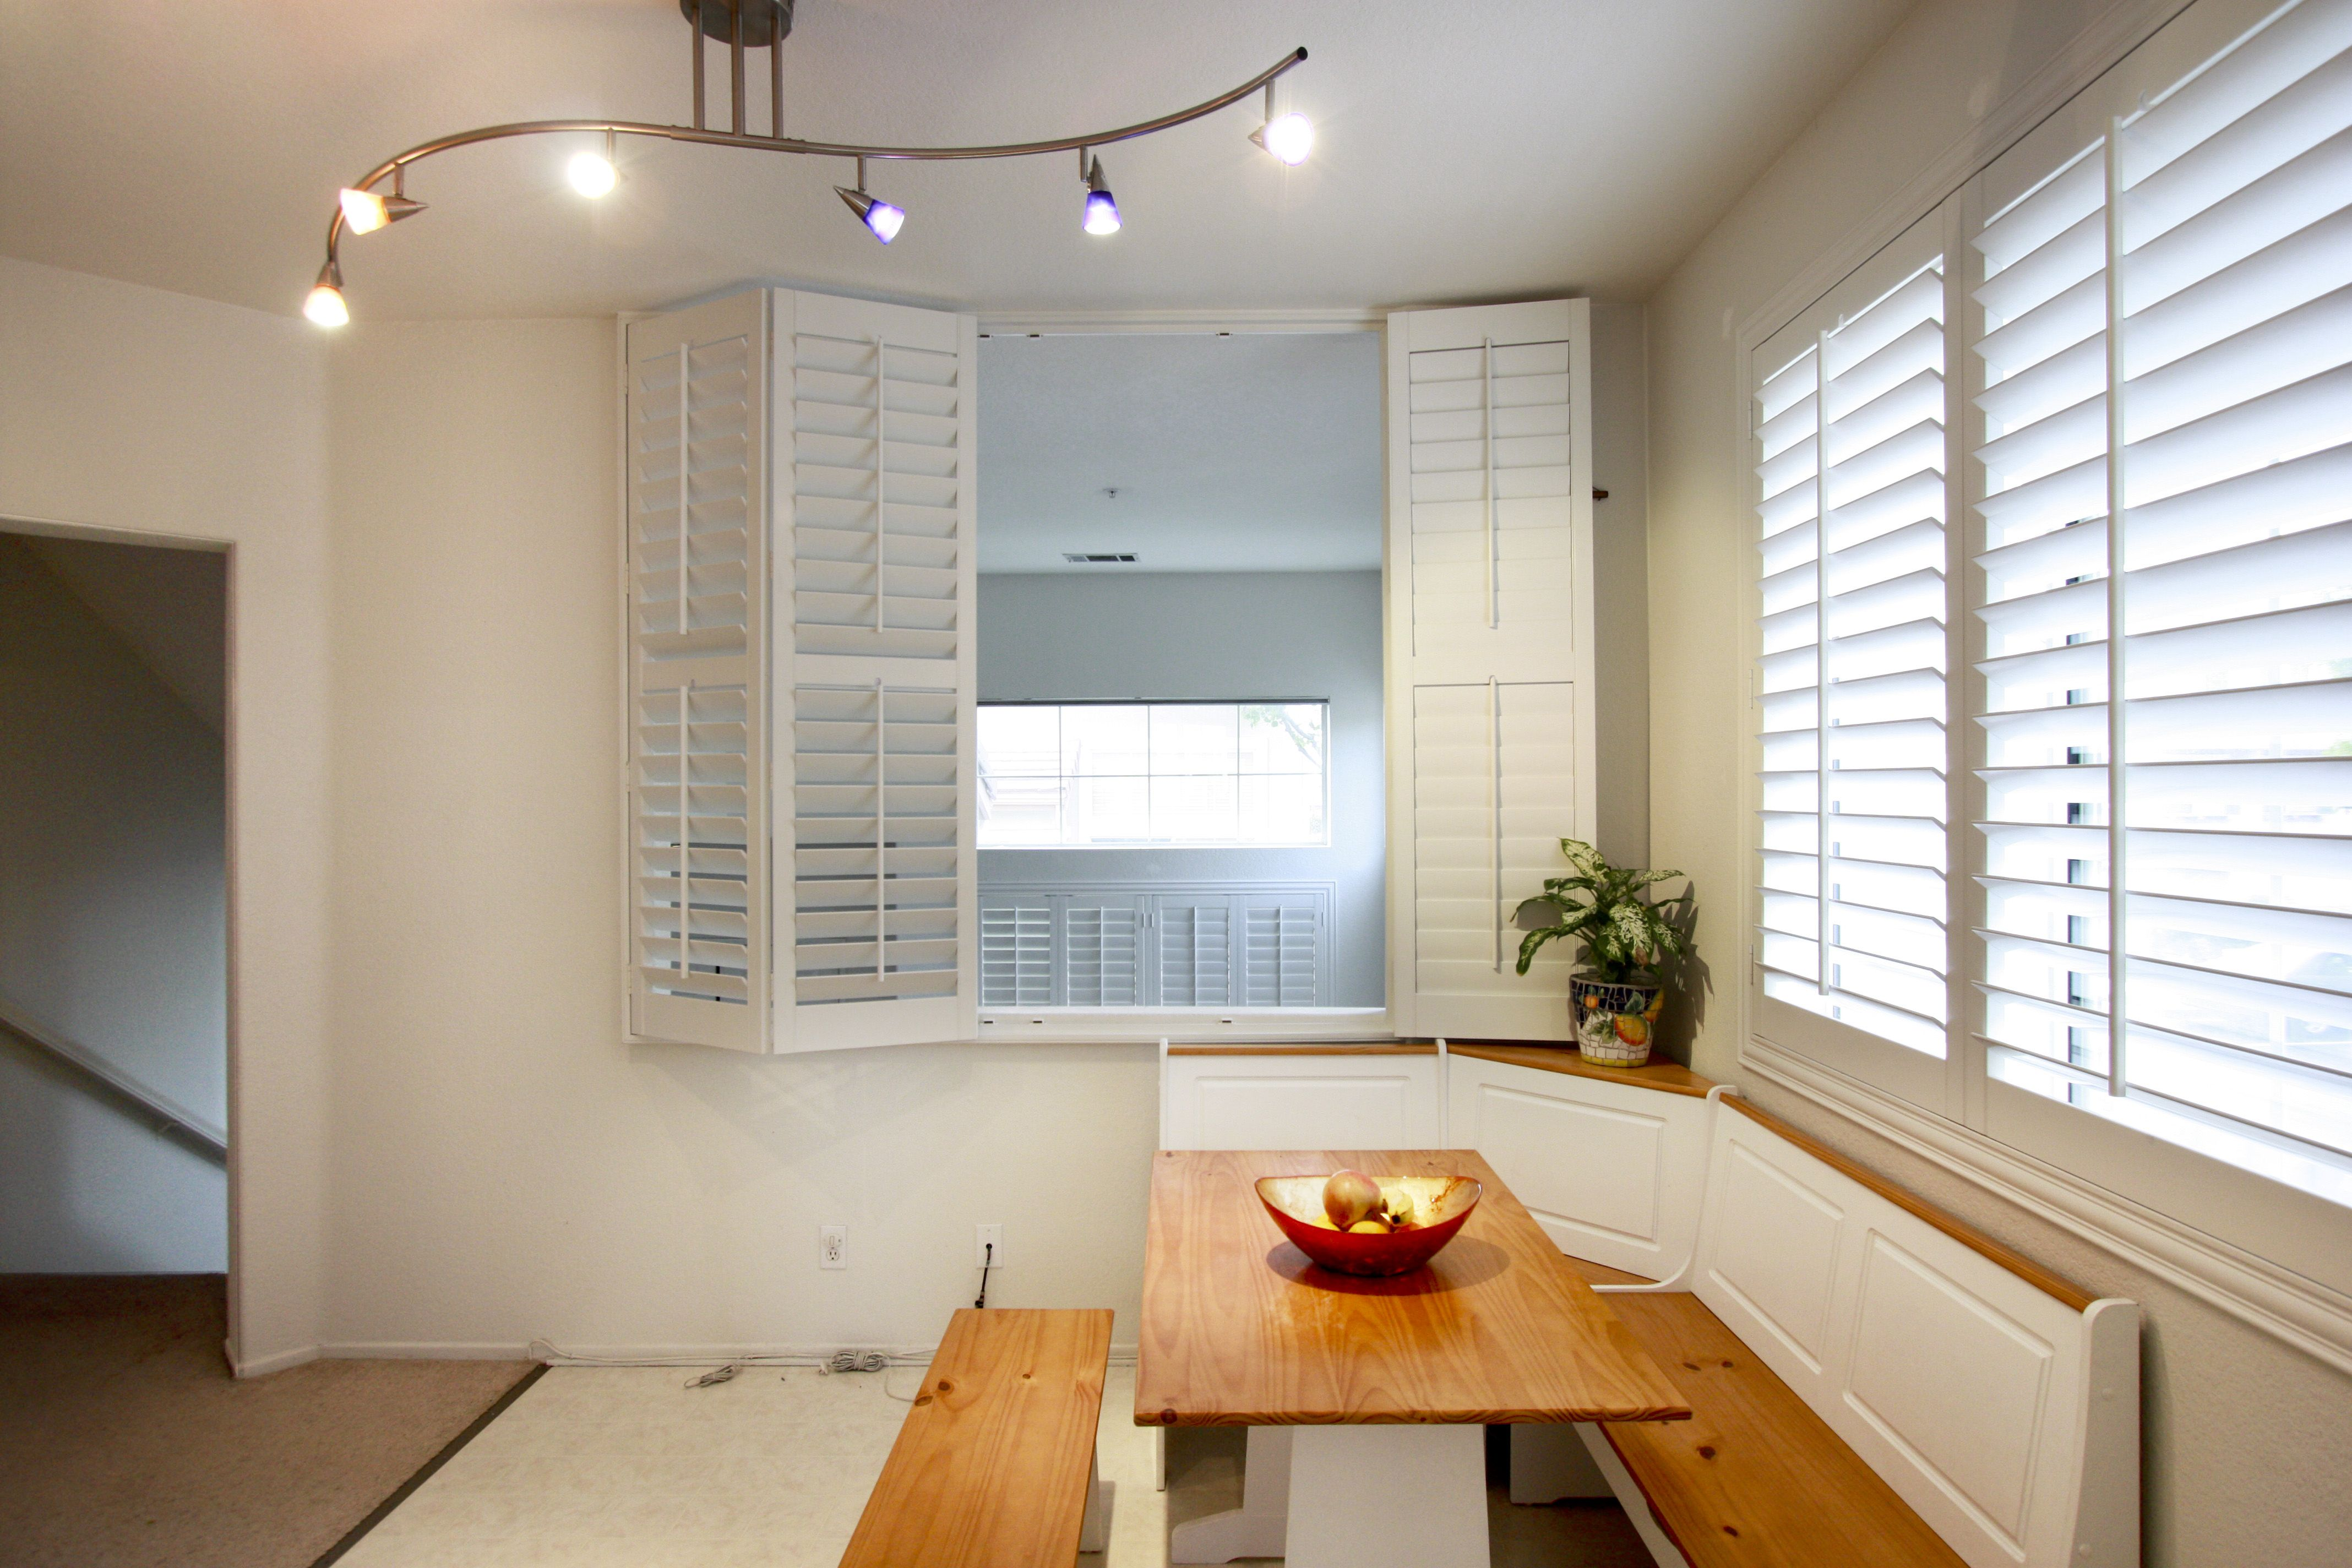 Real wood vs faux wood blinds - Plantation Shutters Real Wood Vs Faux Wood Unlike Composite Poly Shutters Made Of Faux Wood Plantation Shutters Made Of Real Wood Have